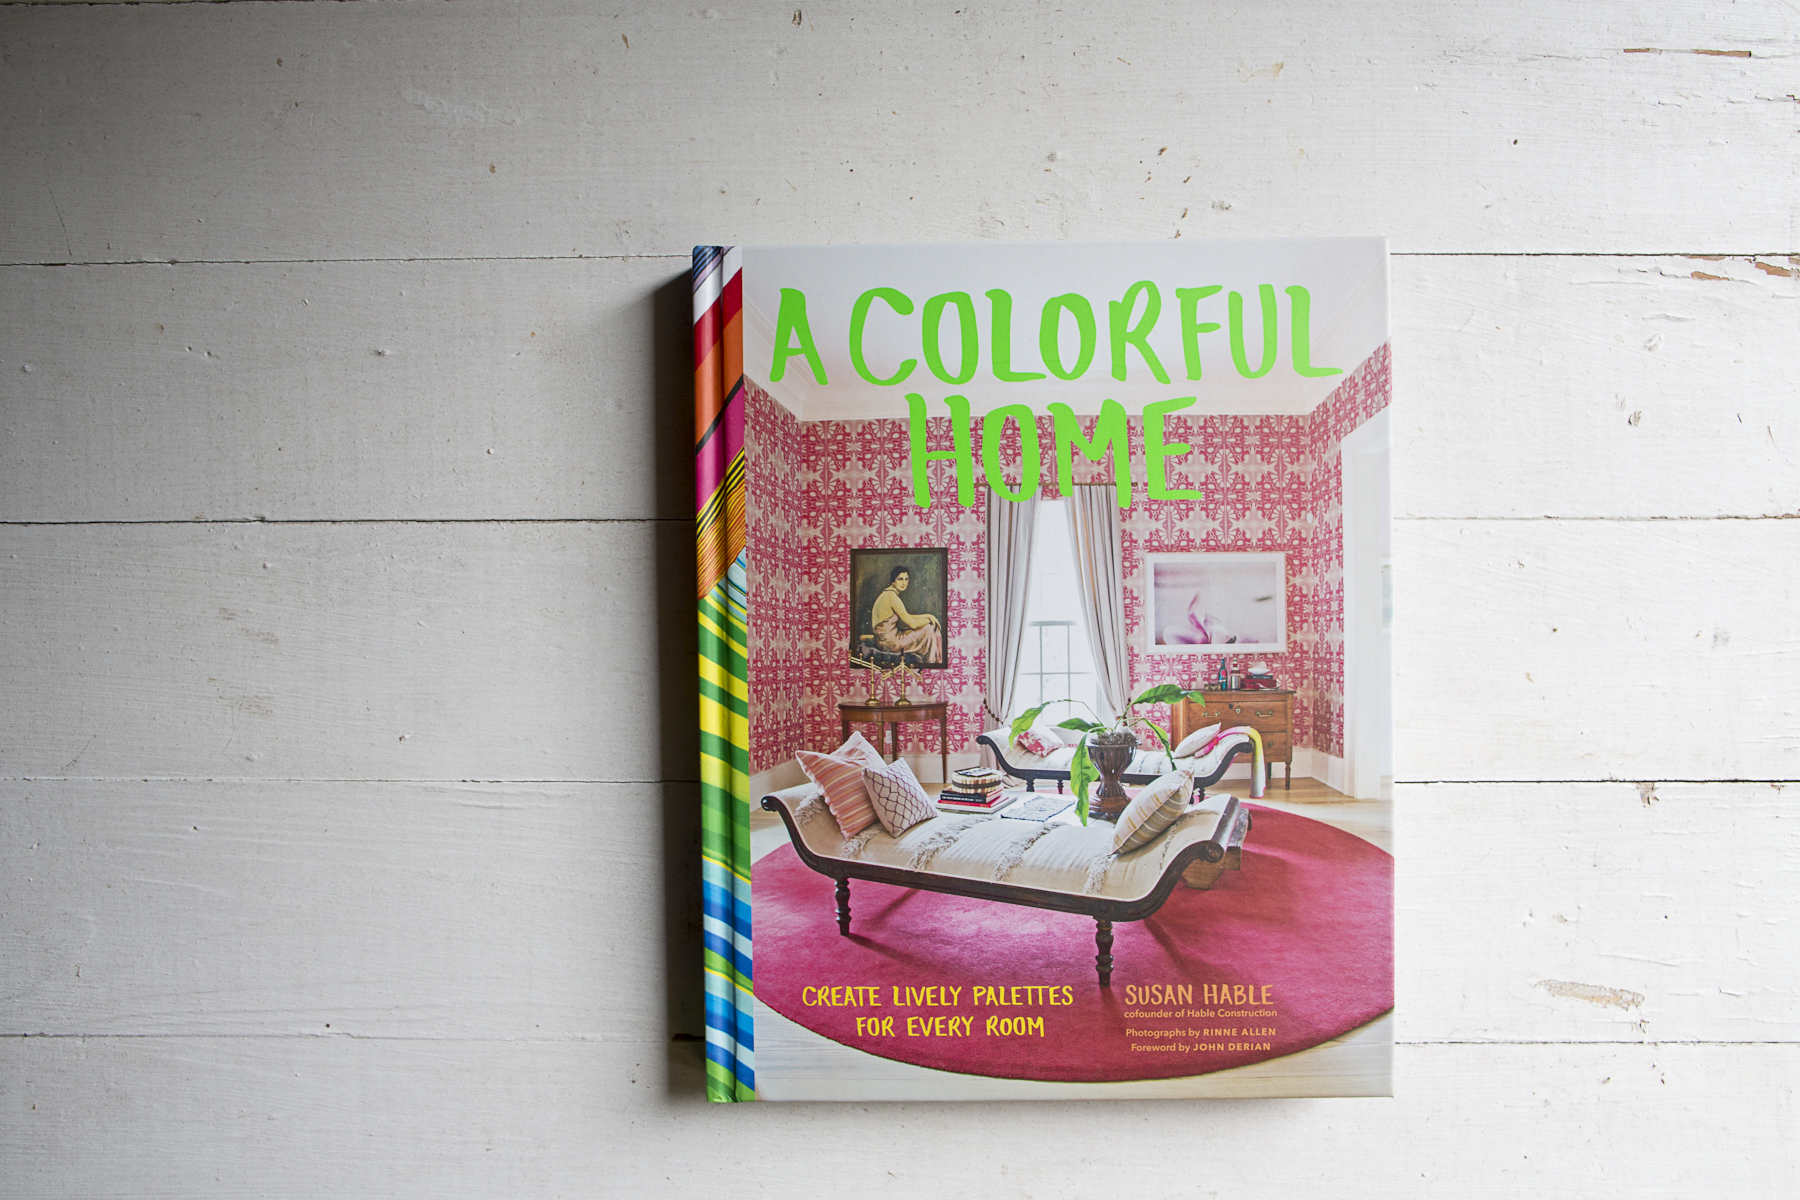 book: a colorful home